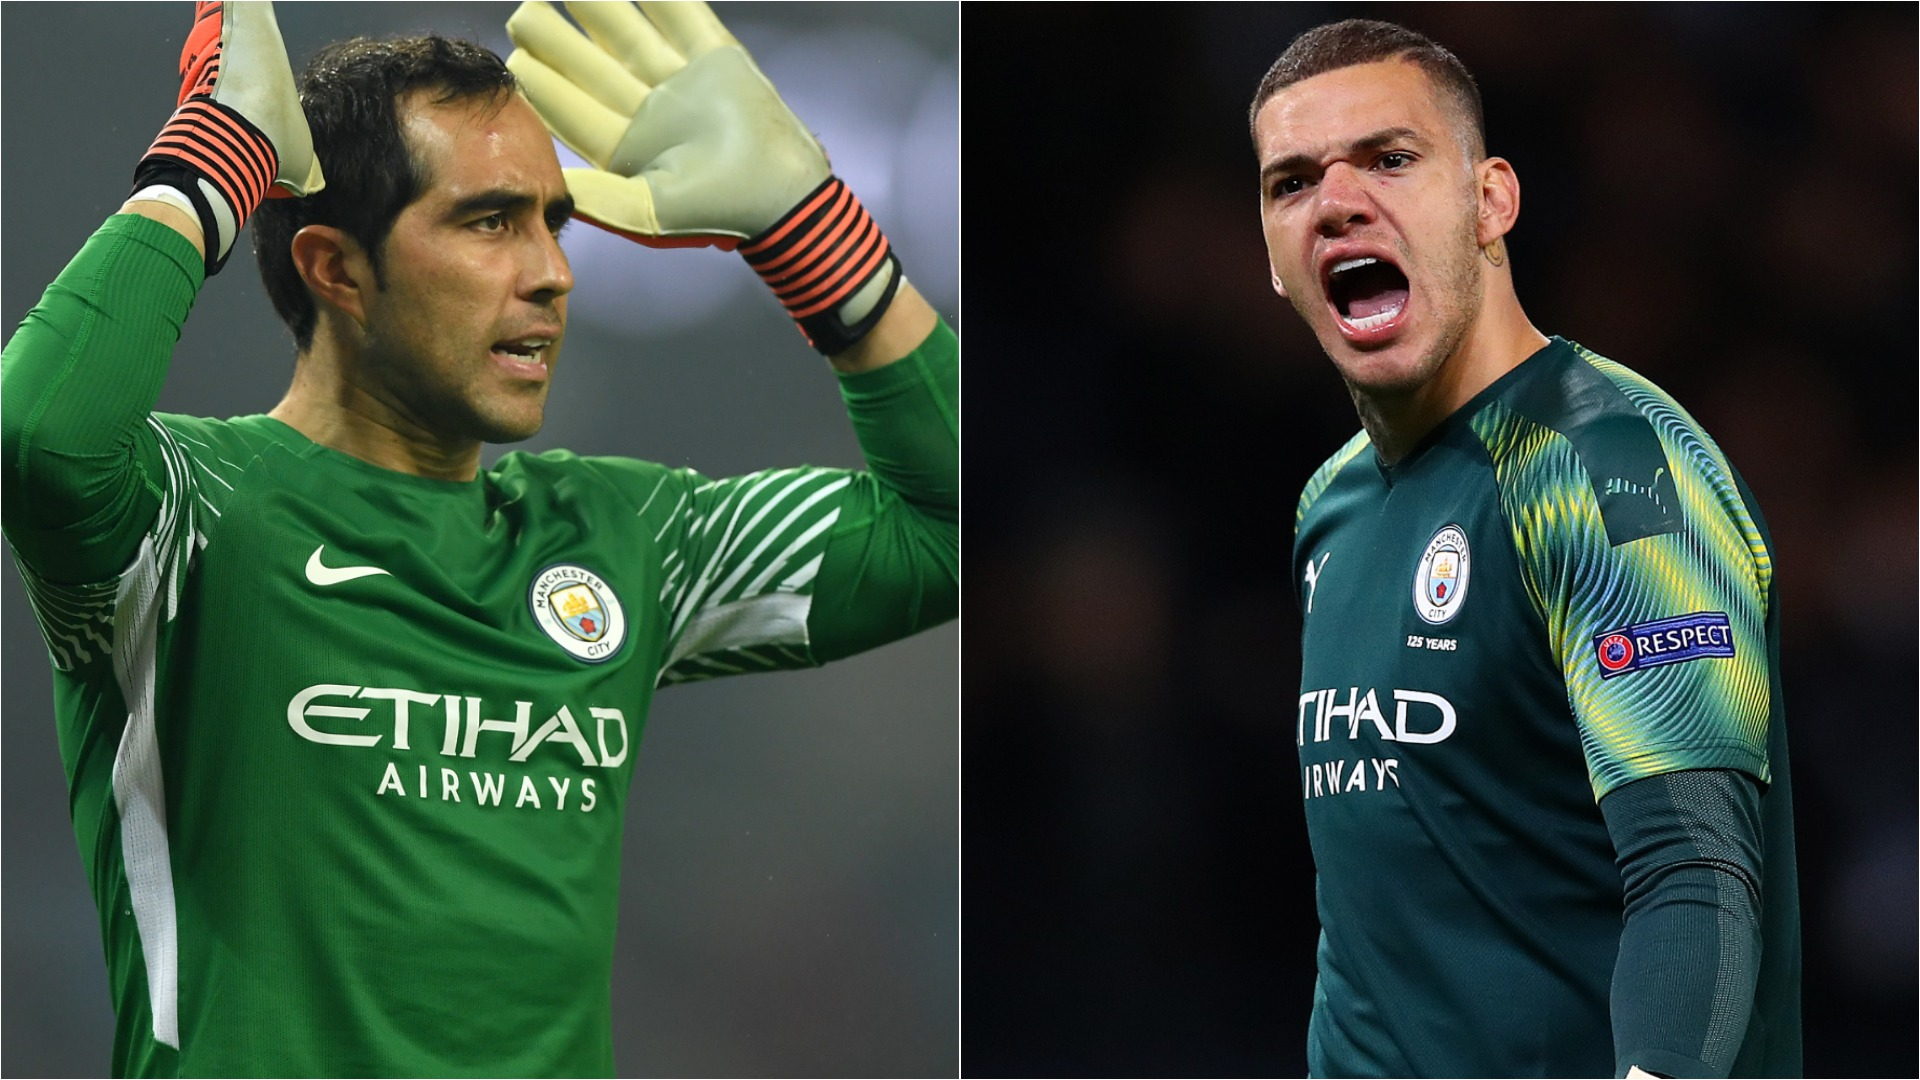 Claudio Bravo will start against Liverpool due to Ederson's injury. Do Opta stats suggest Manchester City should be concerned?